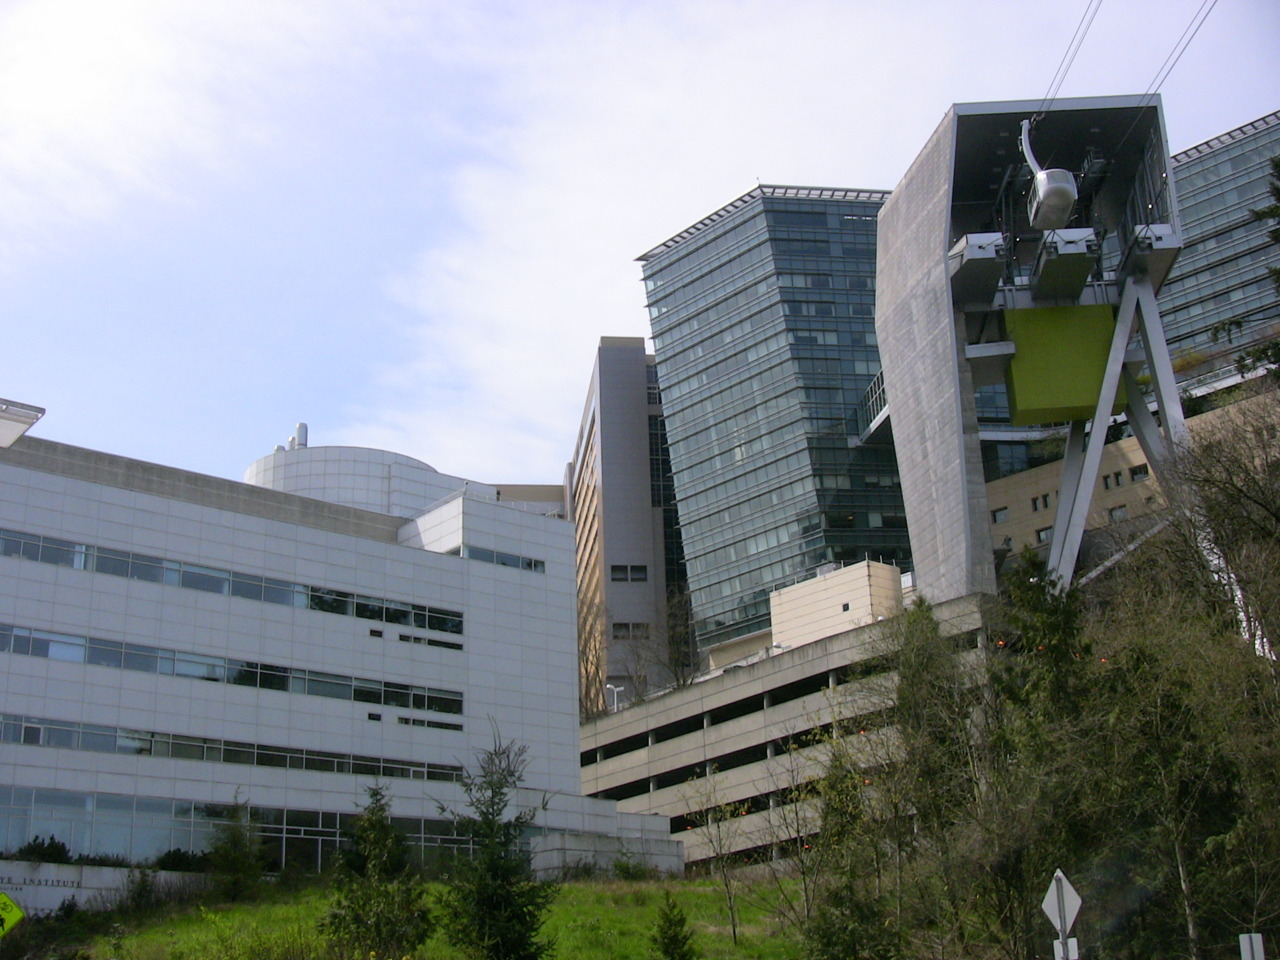 OHSU and the Portland Aerial Tram's upper terminal from Terwilliger Blvd.